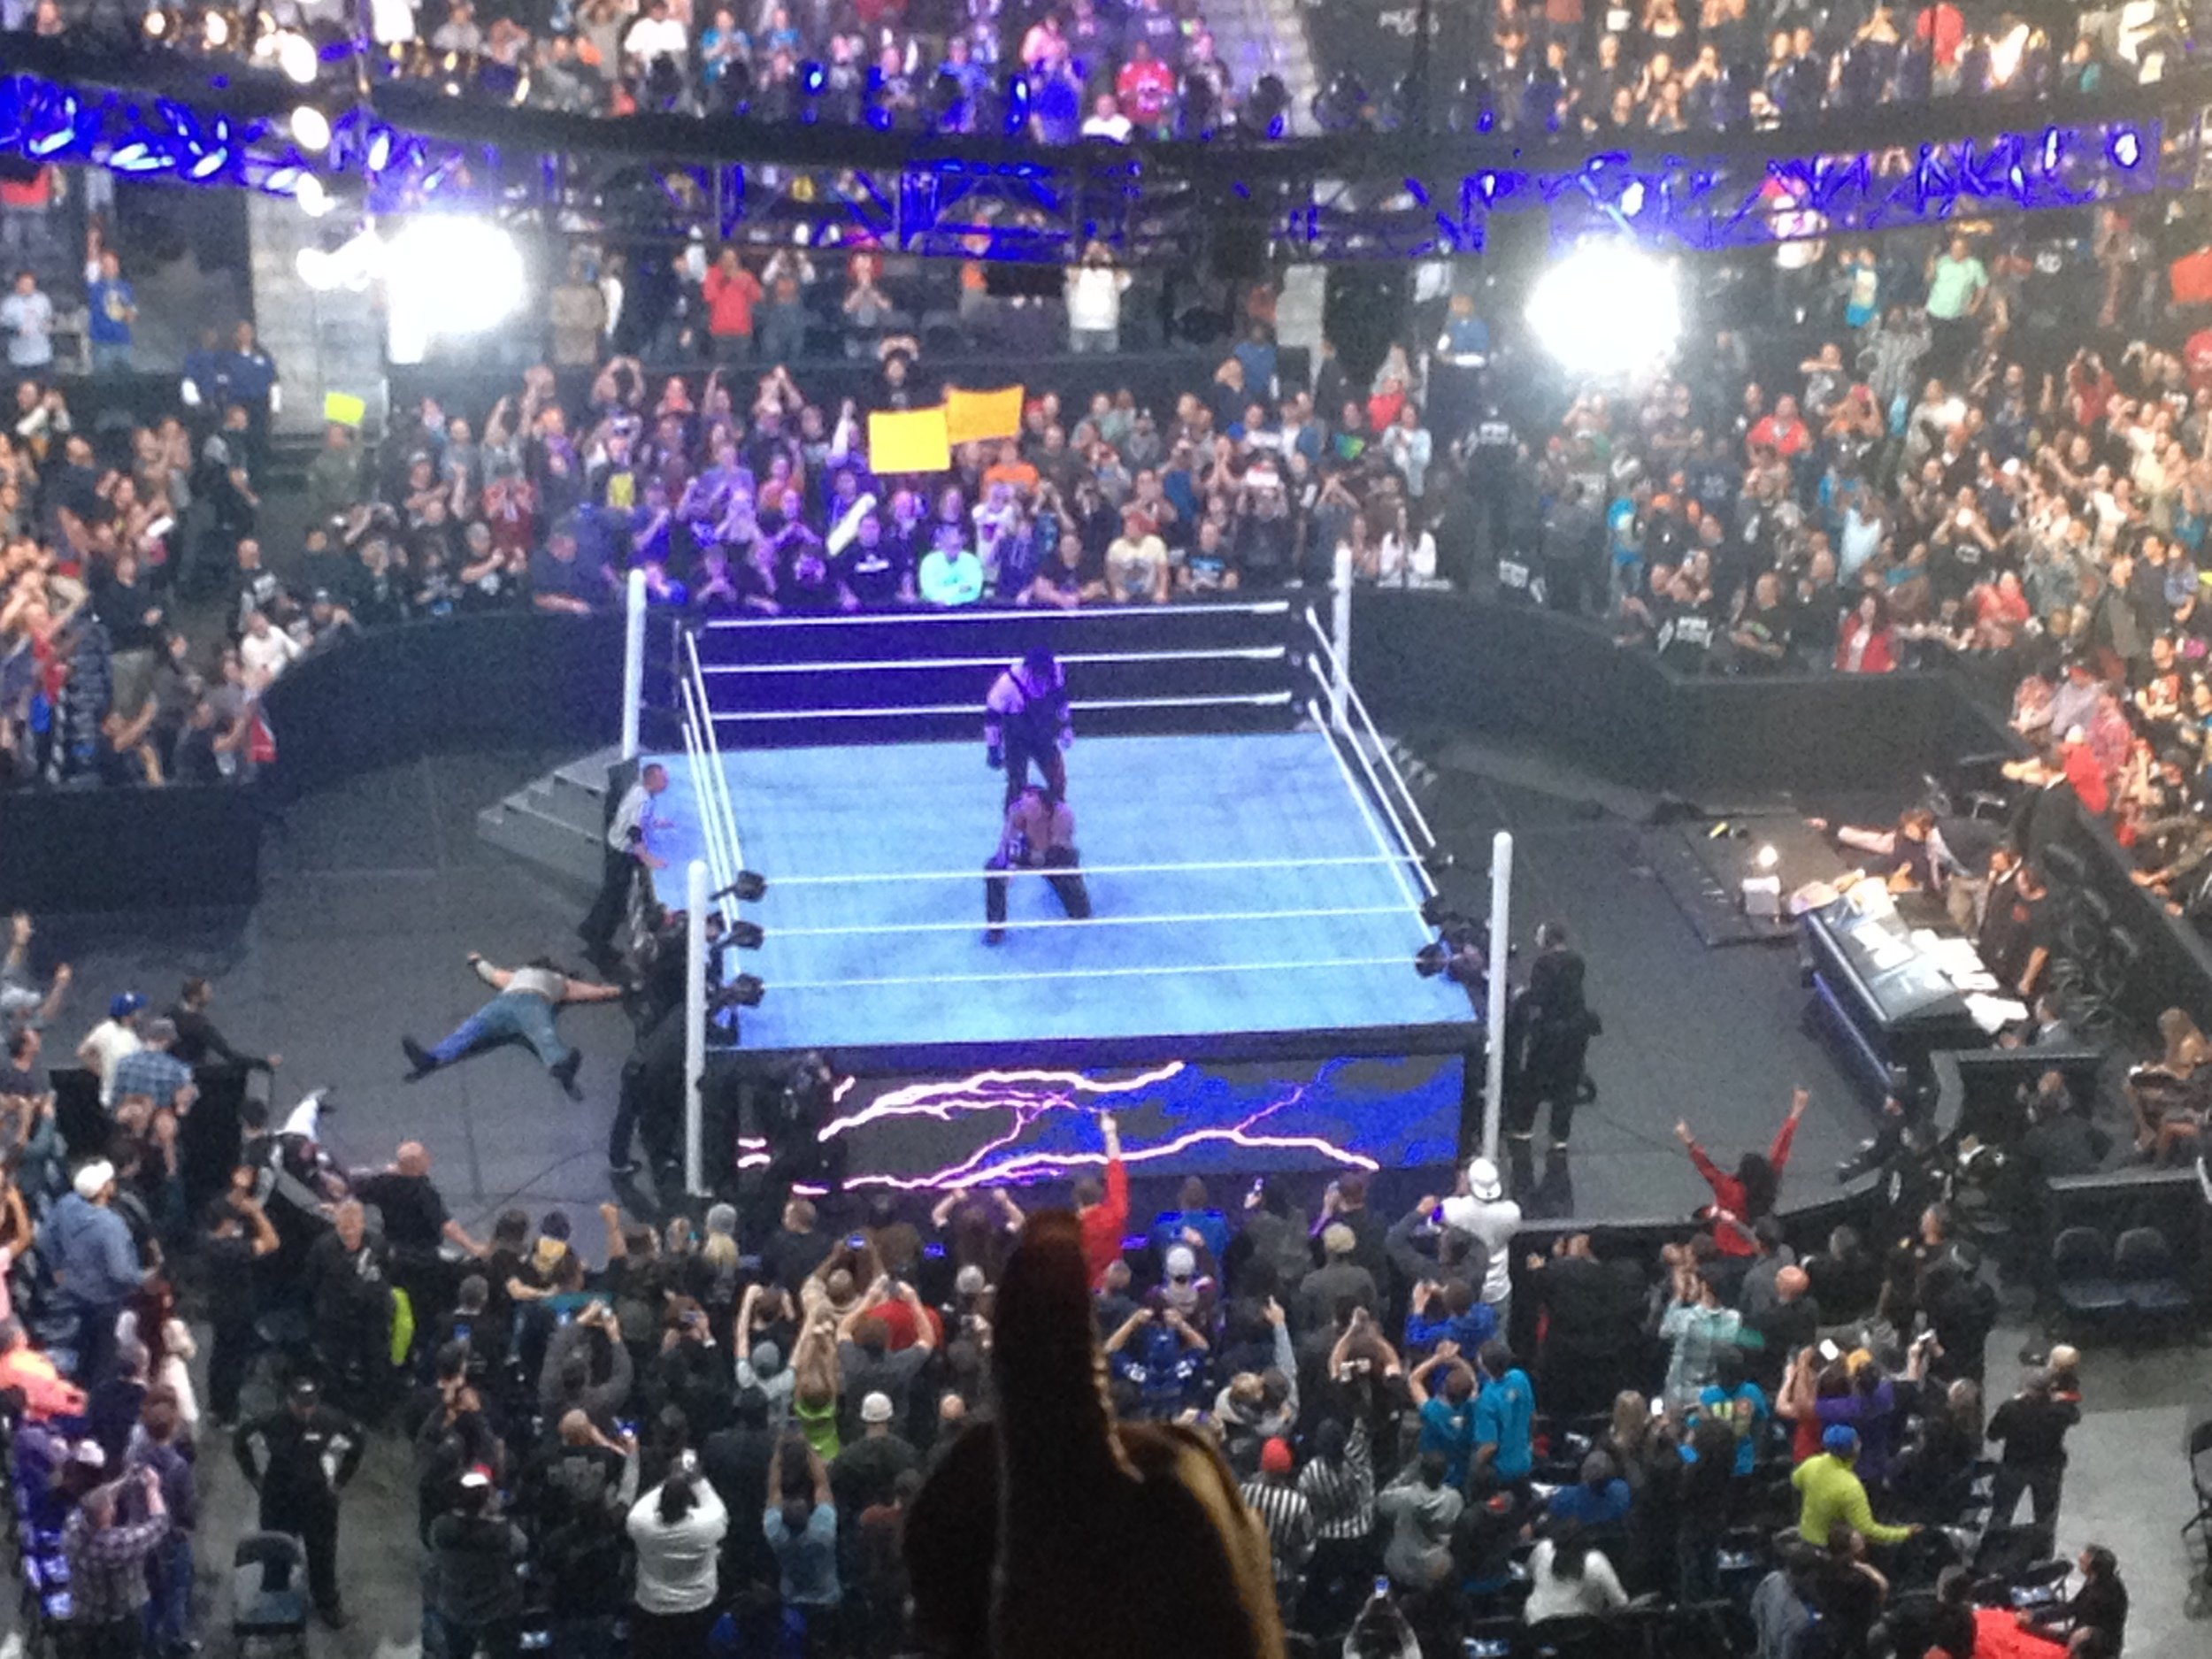 Kane & The Undertaker vs. The Wyatt Family - Survivor Series 2015 - Atlanta, GA